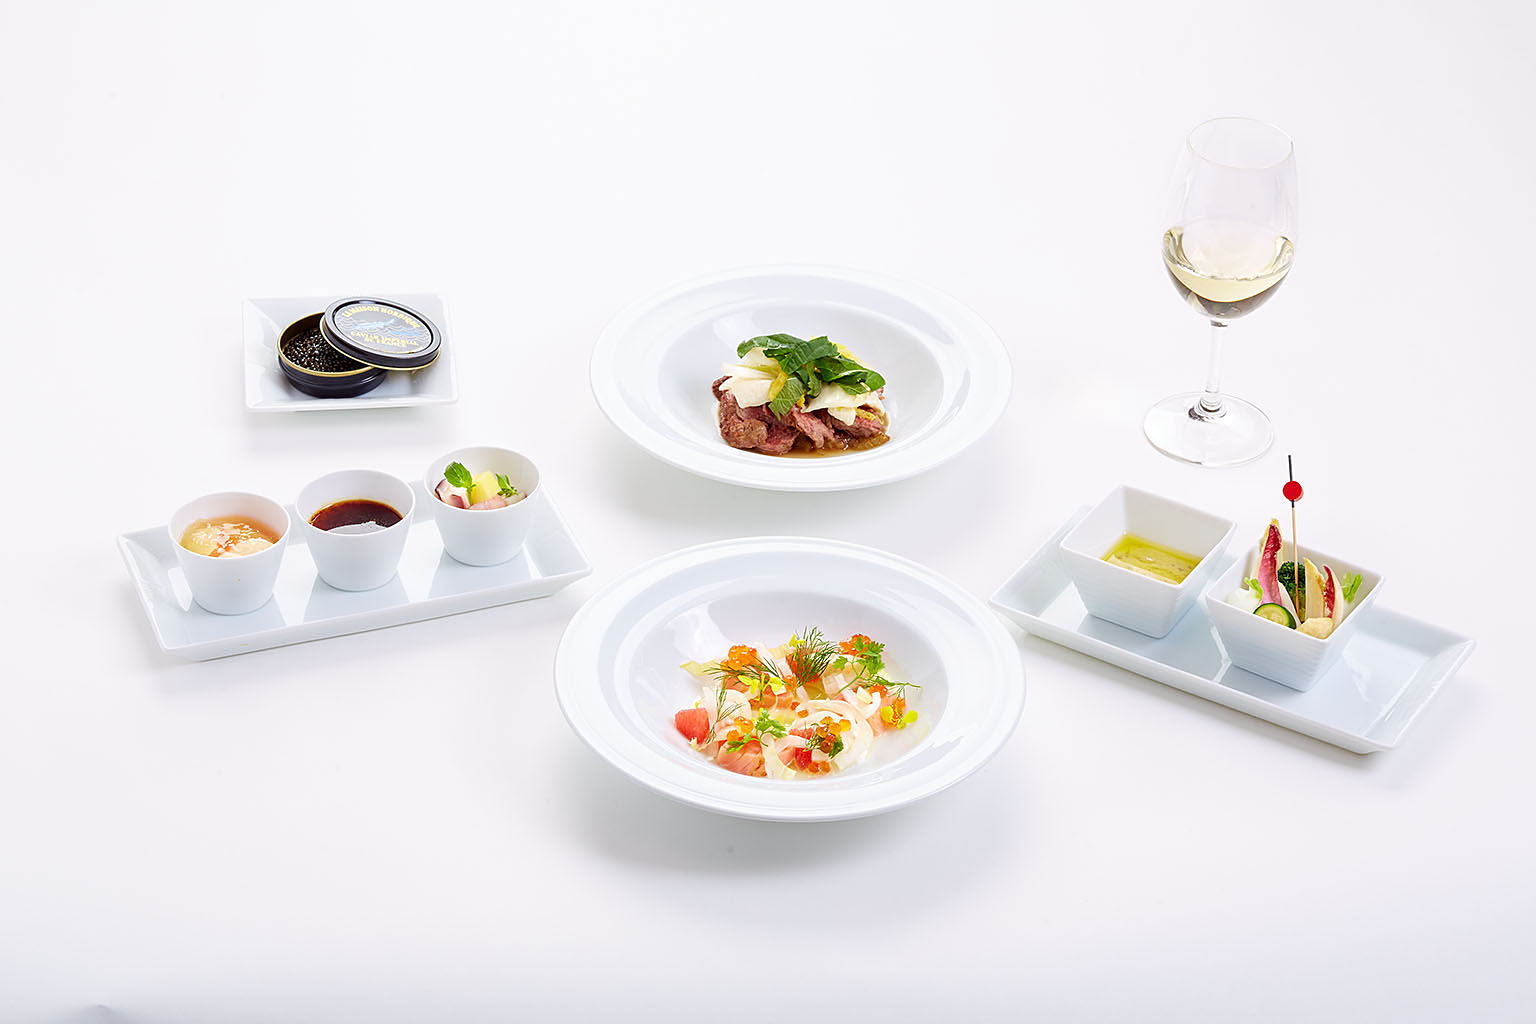 in-flight menu for Japan Airlines